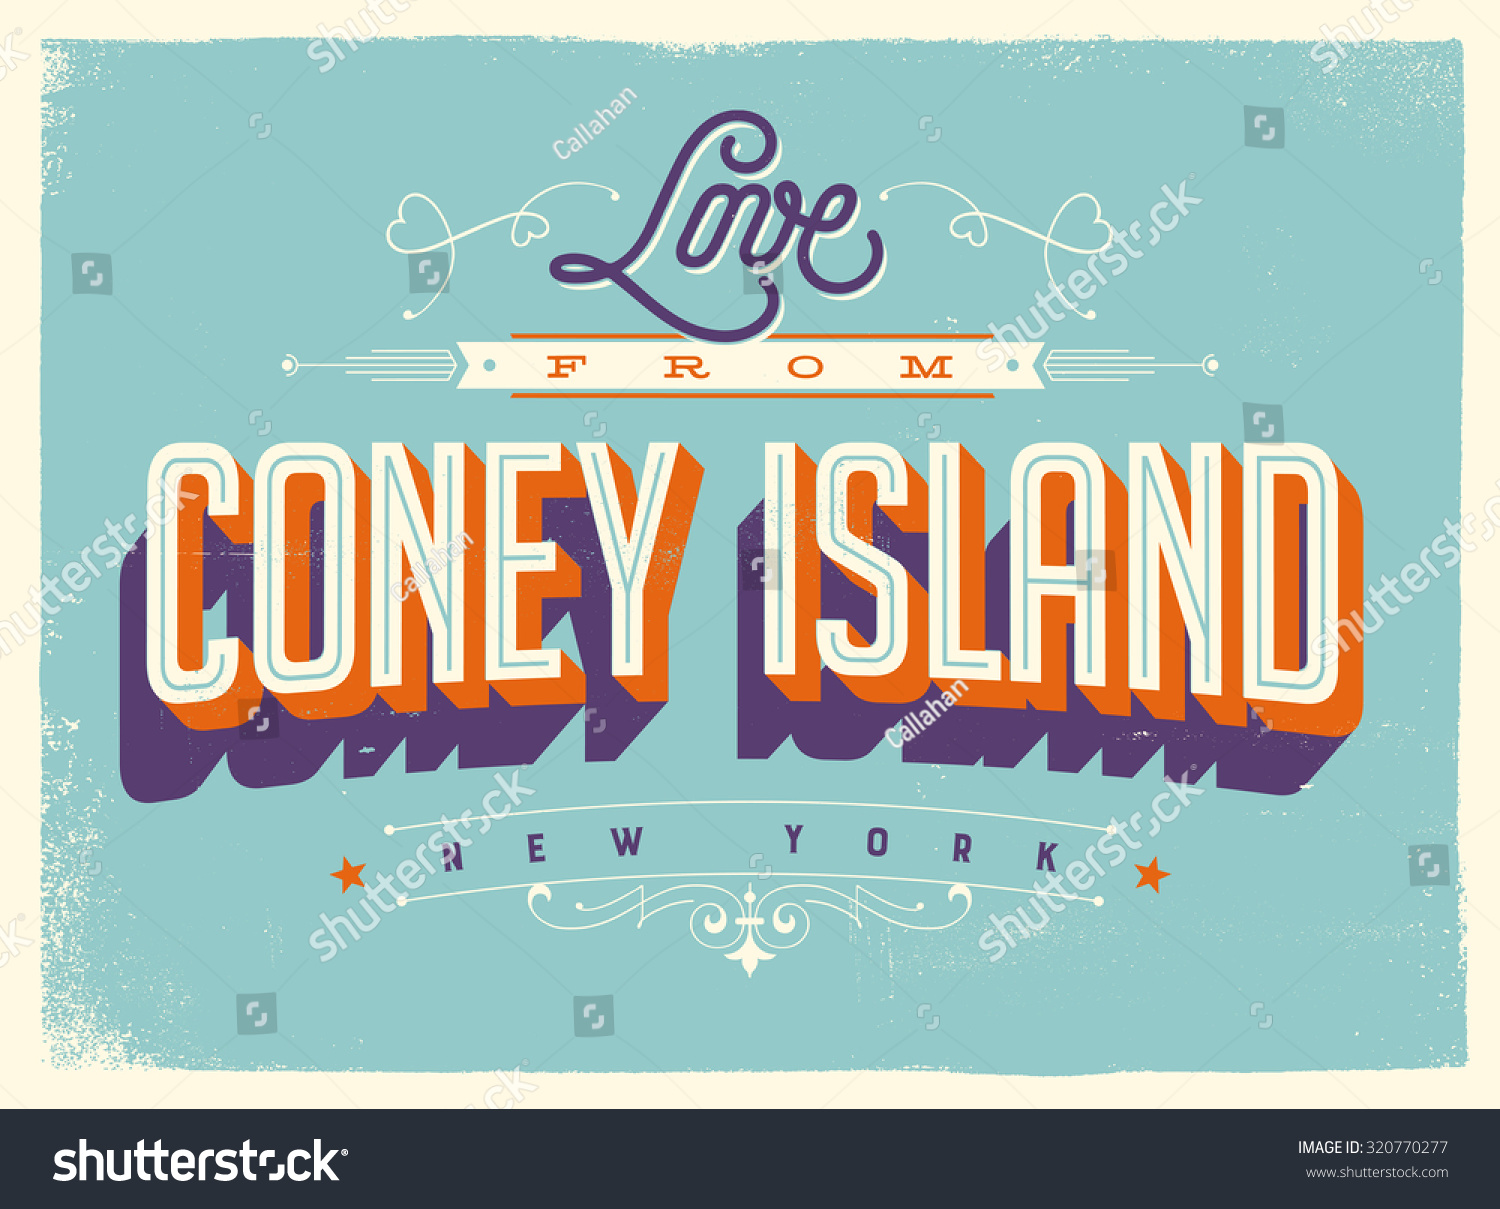 Vintage style touristic greeting card texture stock vector 320770277 vintage style touristic greeting card with texture effects love from coney island new york kristyandbryce Gallery